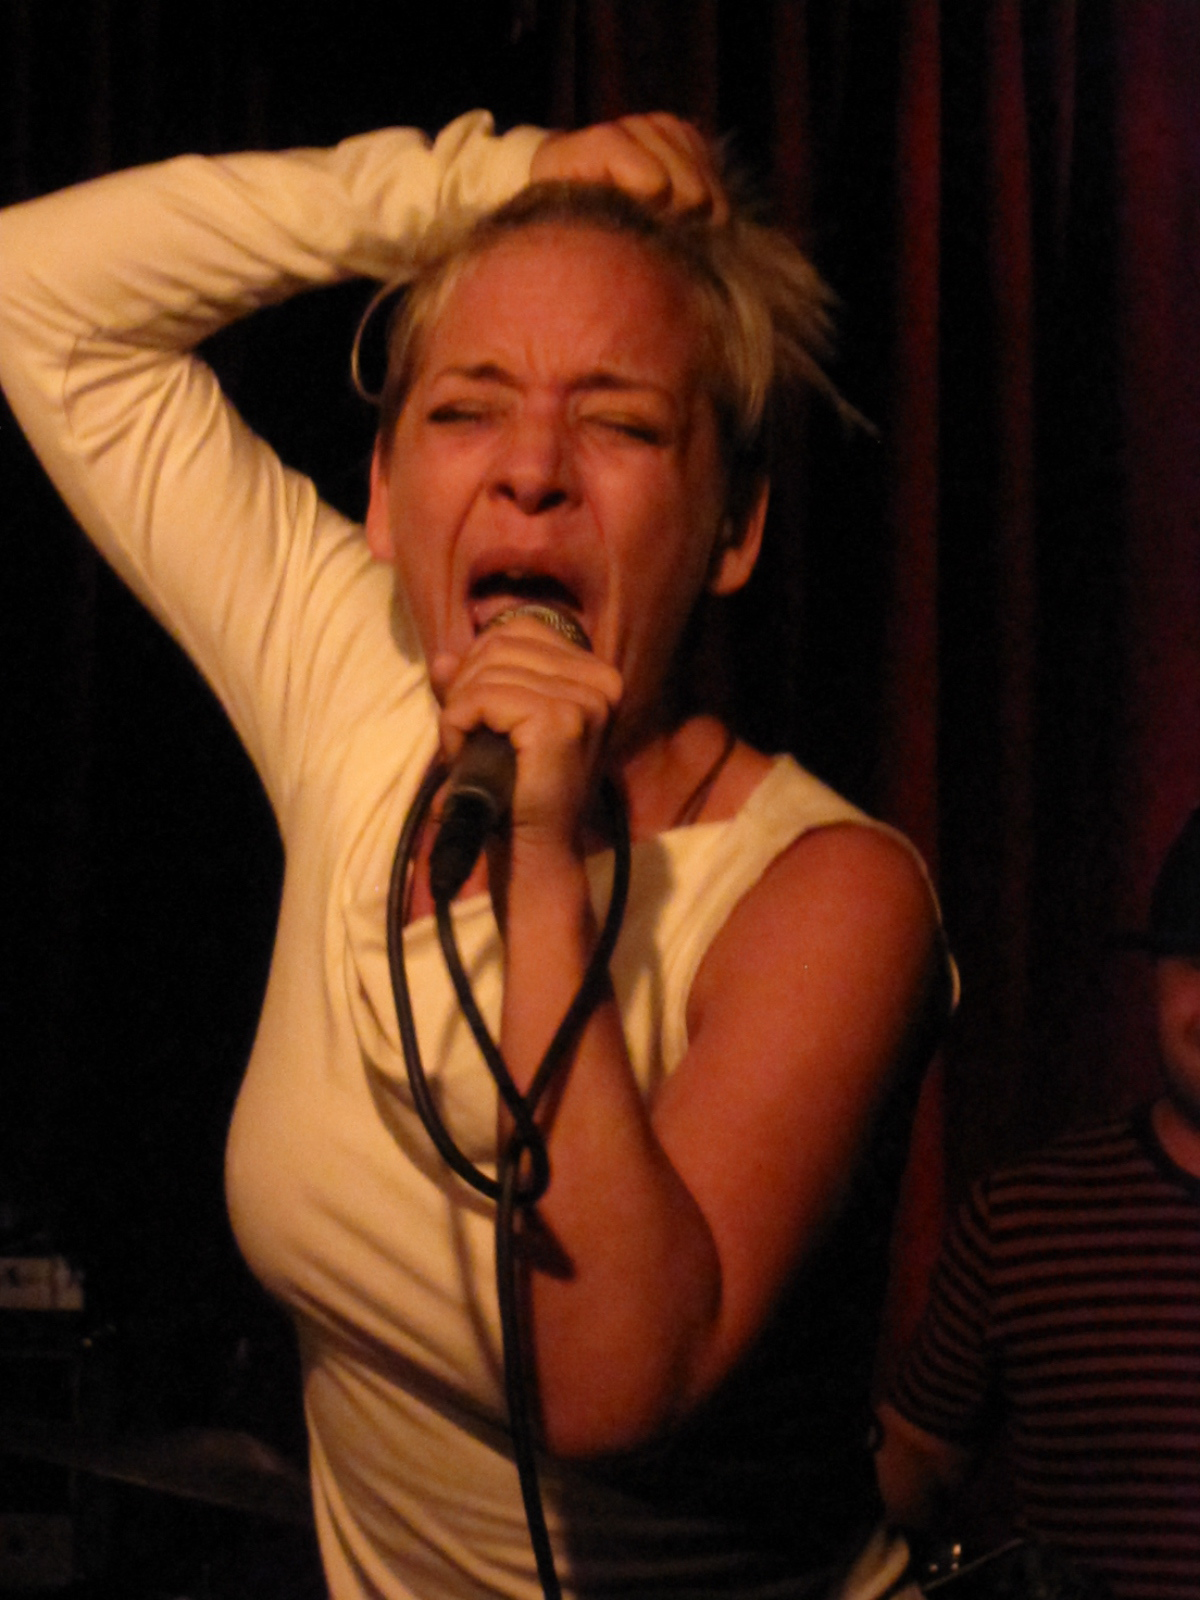 The Choke's singer Cameron Eve threatened to launch off the stage.